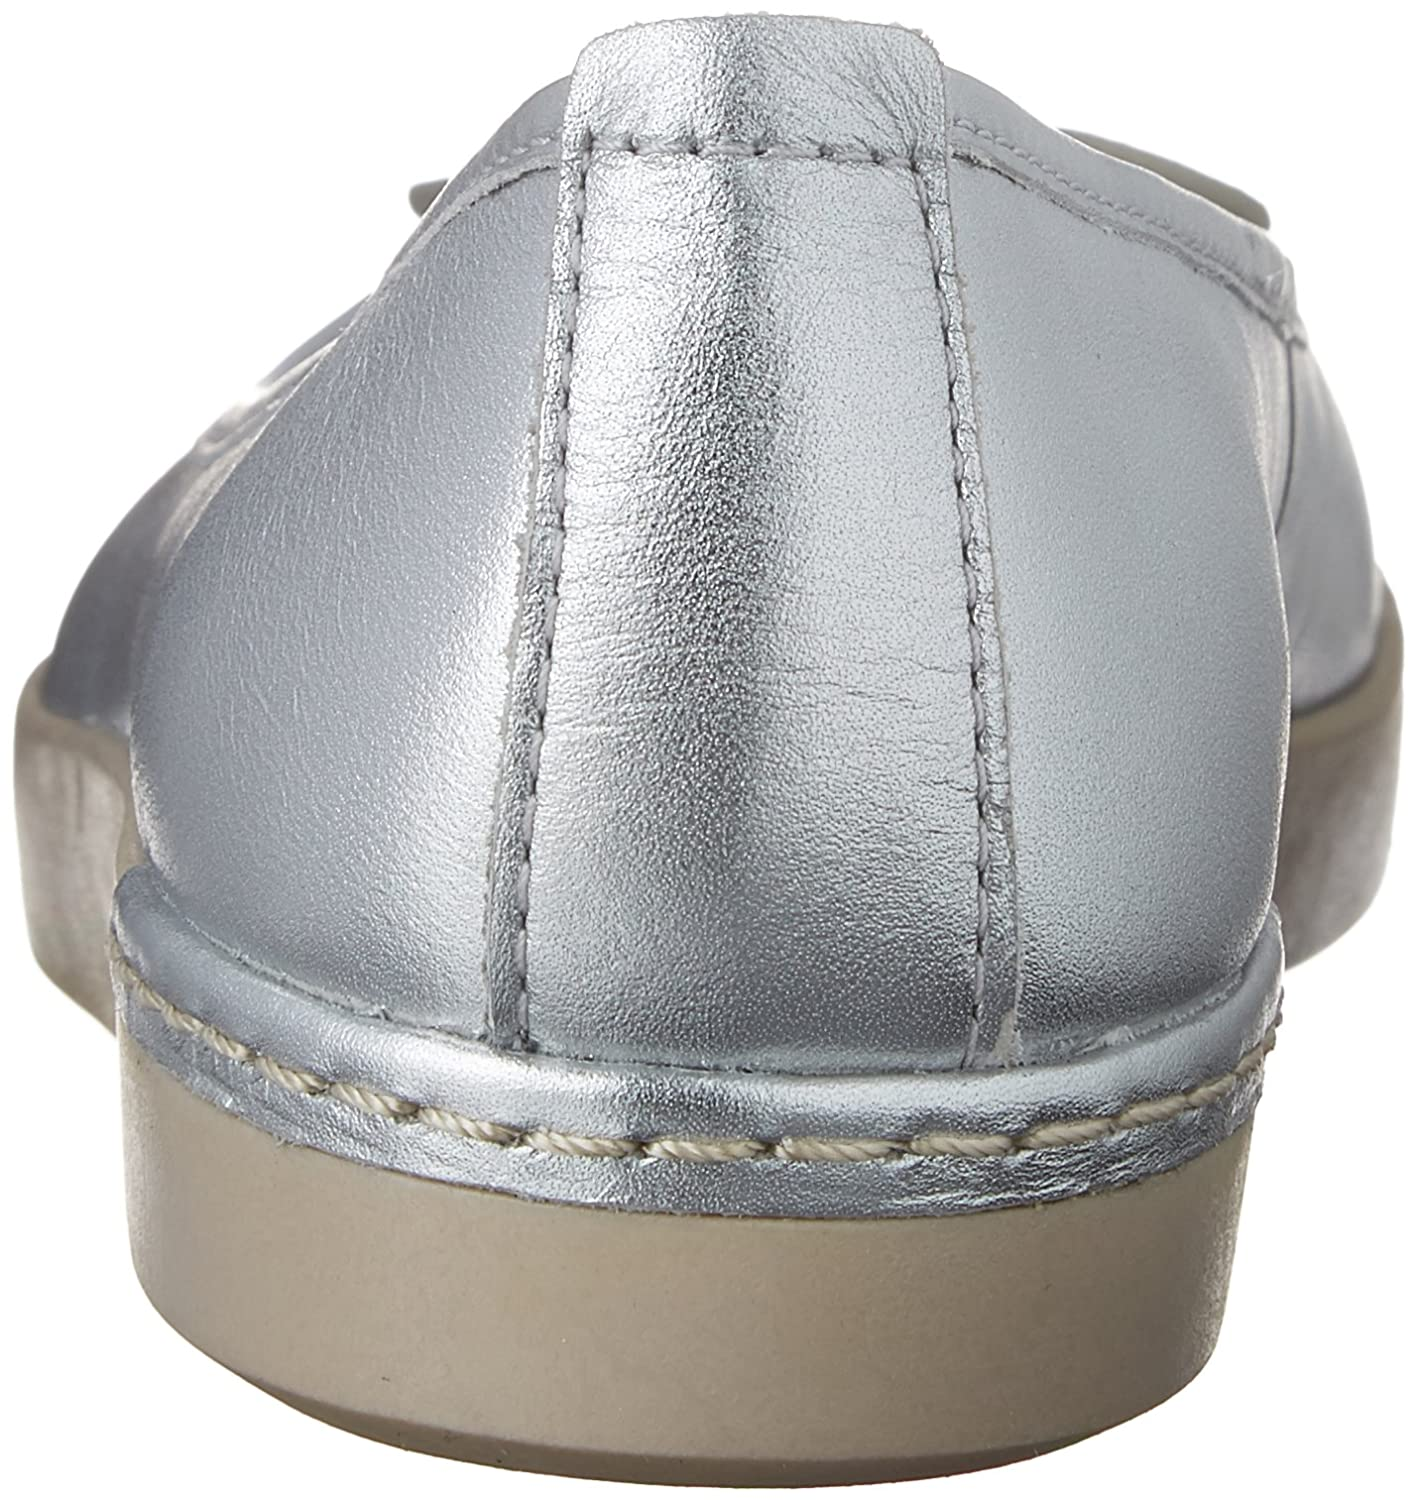 CLARKS Women's Cordella Alto Leather B011VBV40Q 7 B(M) US|Silver Leather Alto a56380